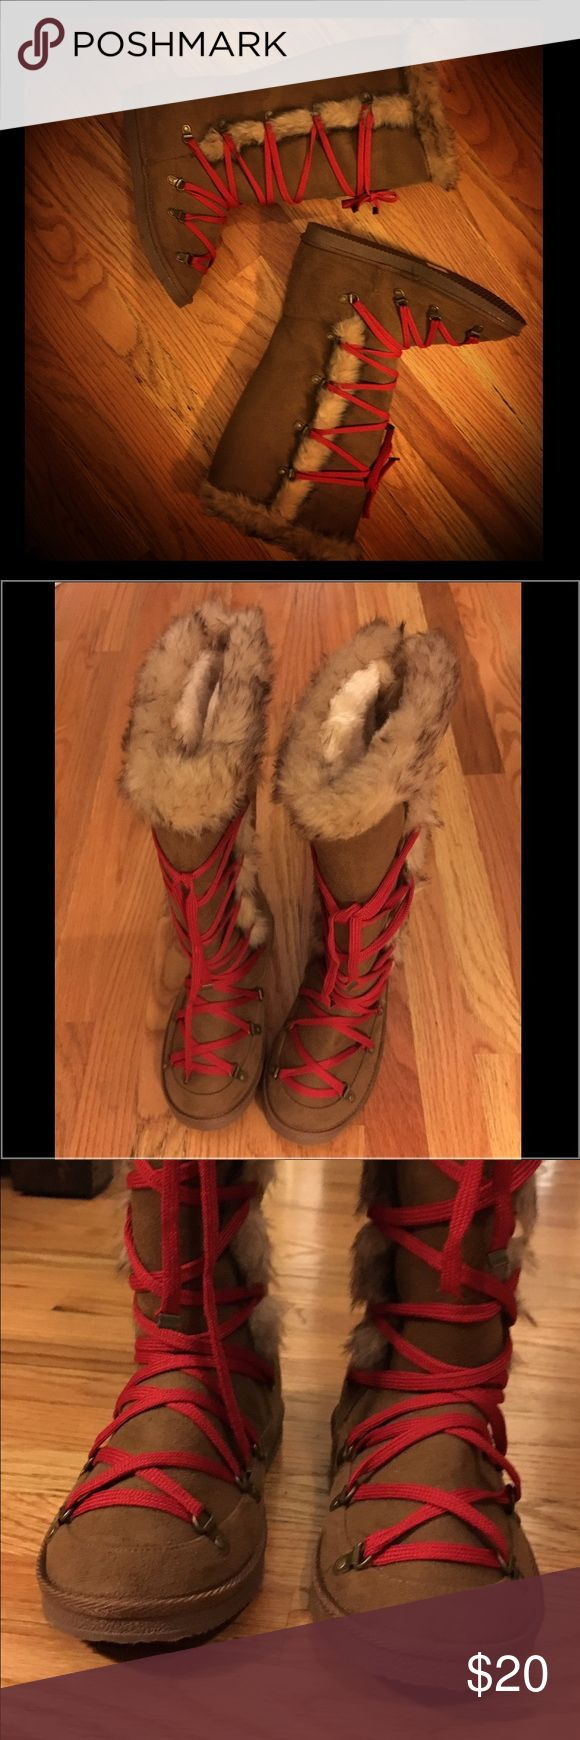 """NEW Yellowknife Fuzzie Boots Women's Sz 8 NEW Yellowknife Fuzzie Boots Women's Sz 8 Stay warm with a fuzzie boot that's all about the details. A lace-up front, d-ring hardware and two-tone faux fur trim make this a unique boot. Faux suede.  16"""" Calf Circumference. Never worn. Smoke free, pet free home. JustFab Shoes"""